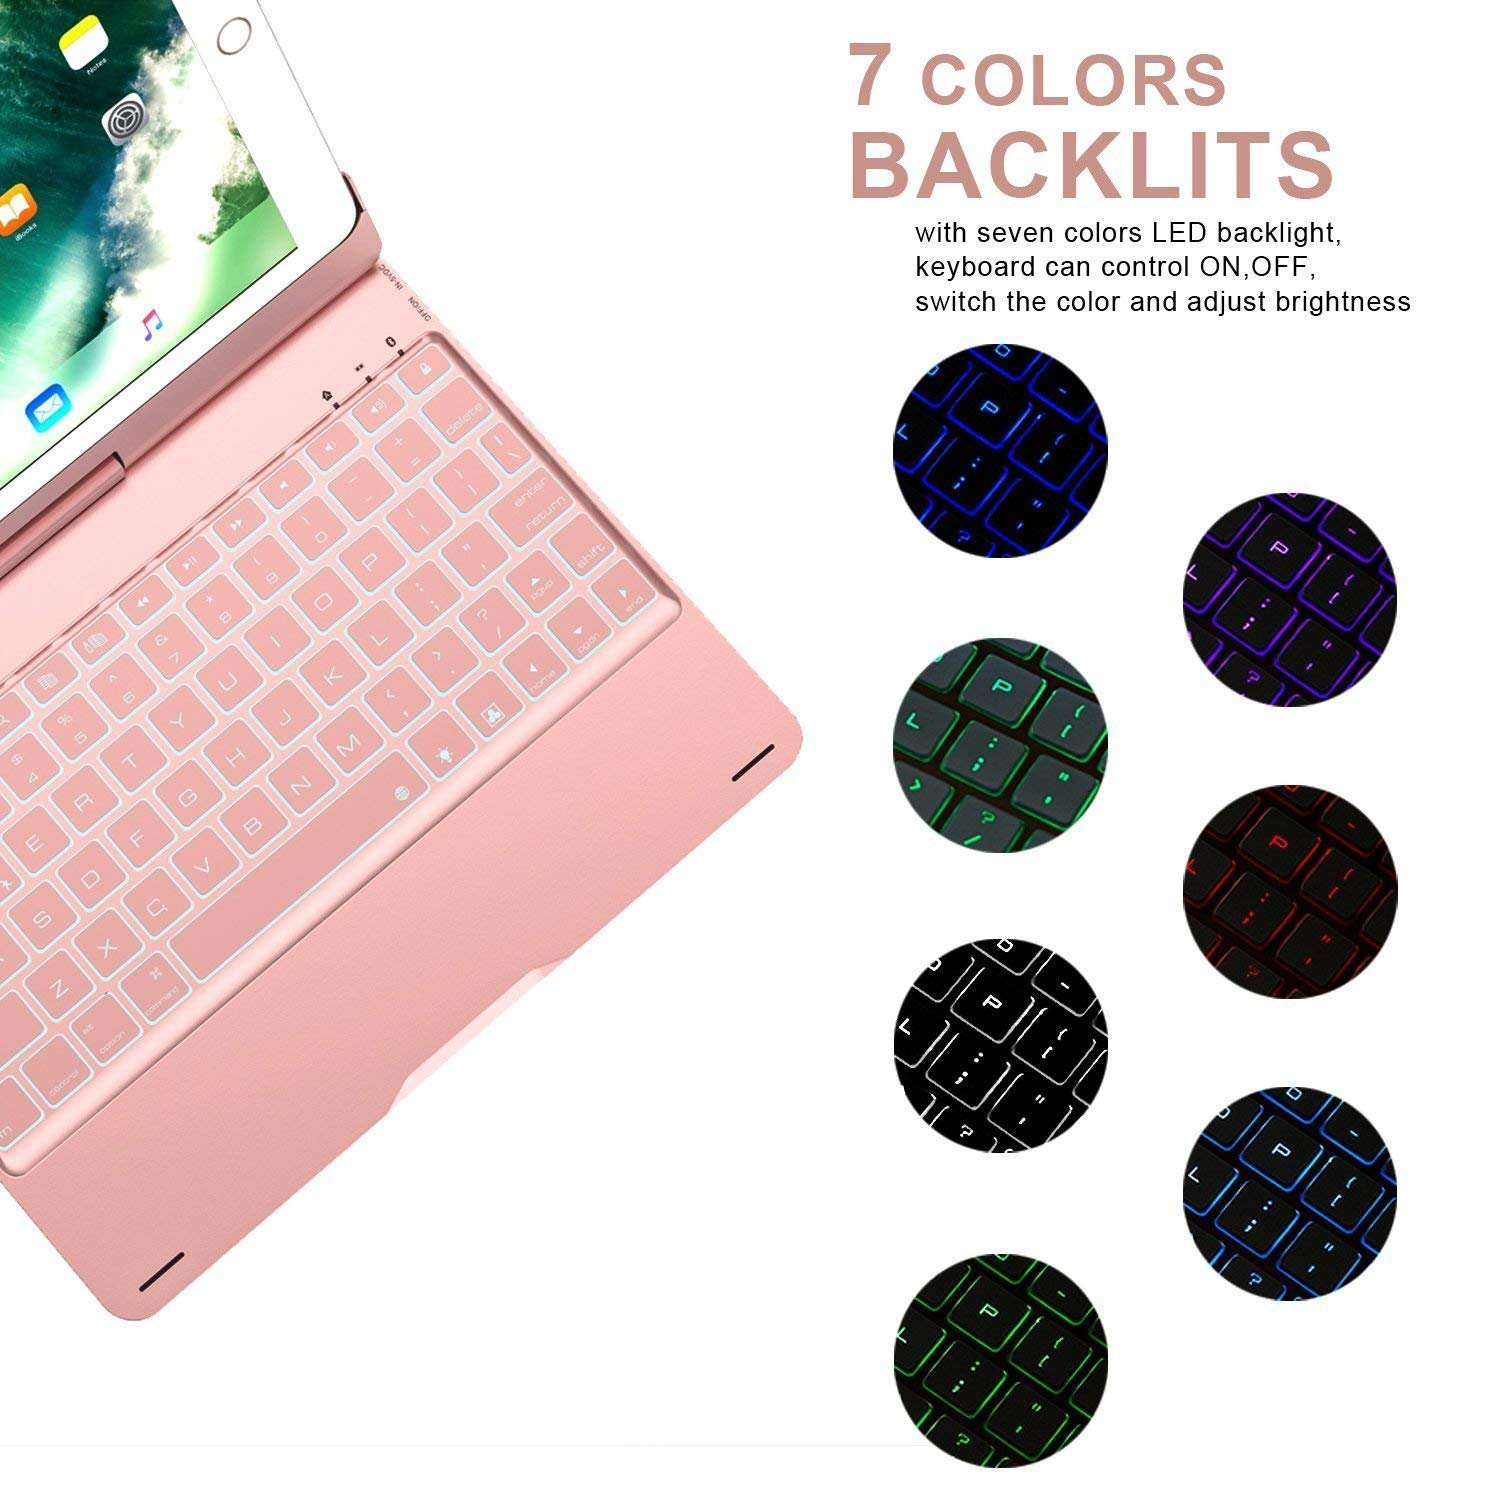 Amazon.com: Keyboard Case for ipad 10.5 inch, 7 Color Backlight ...